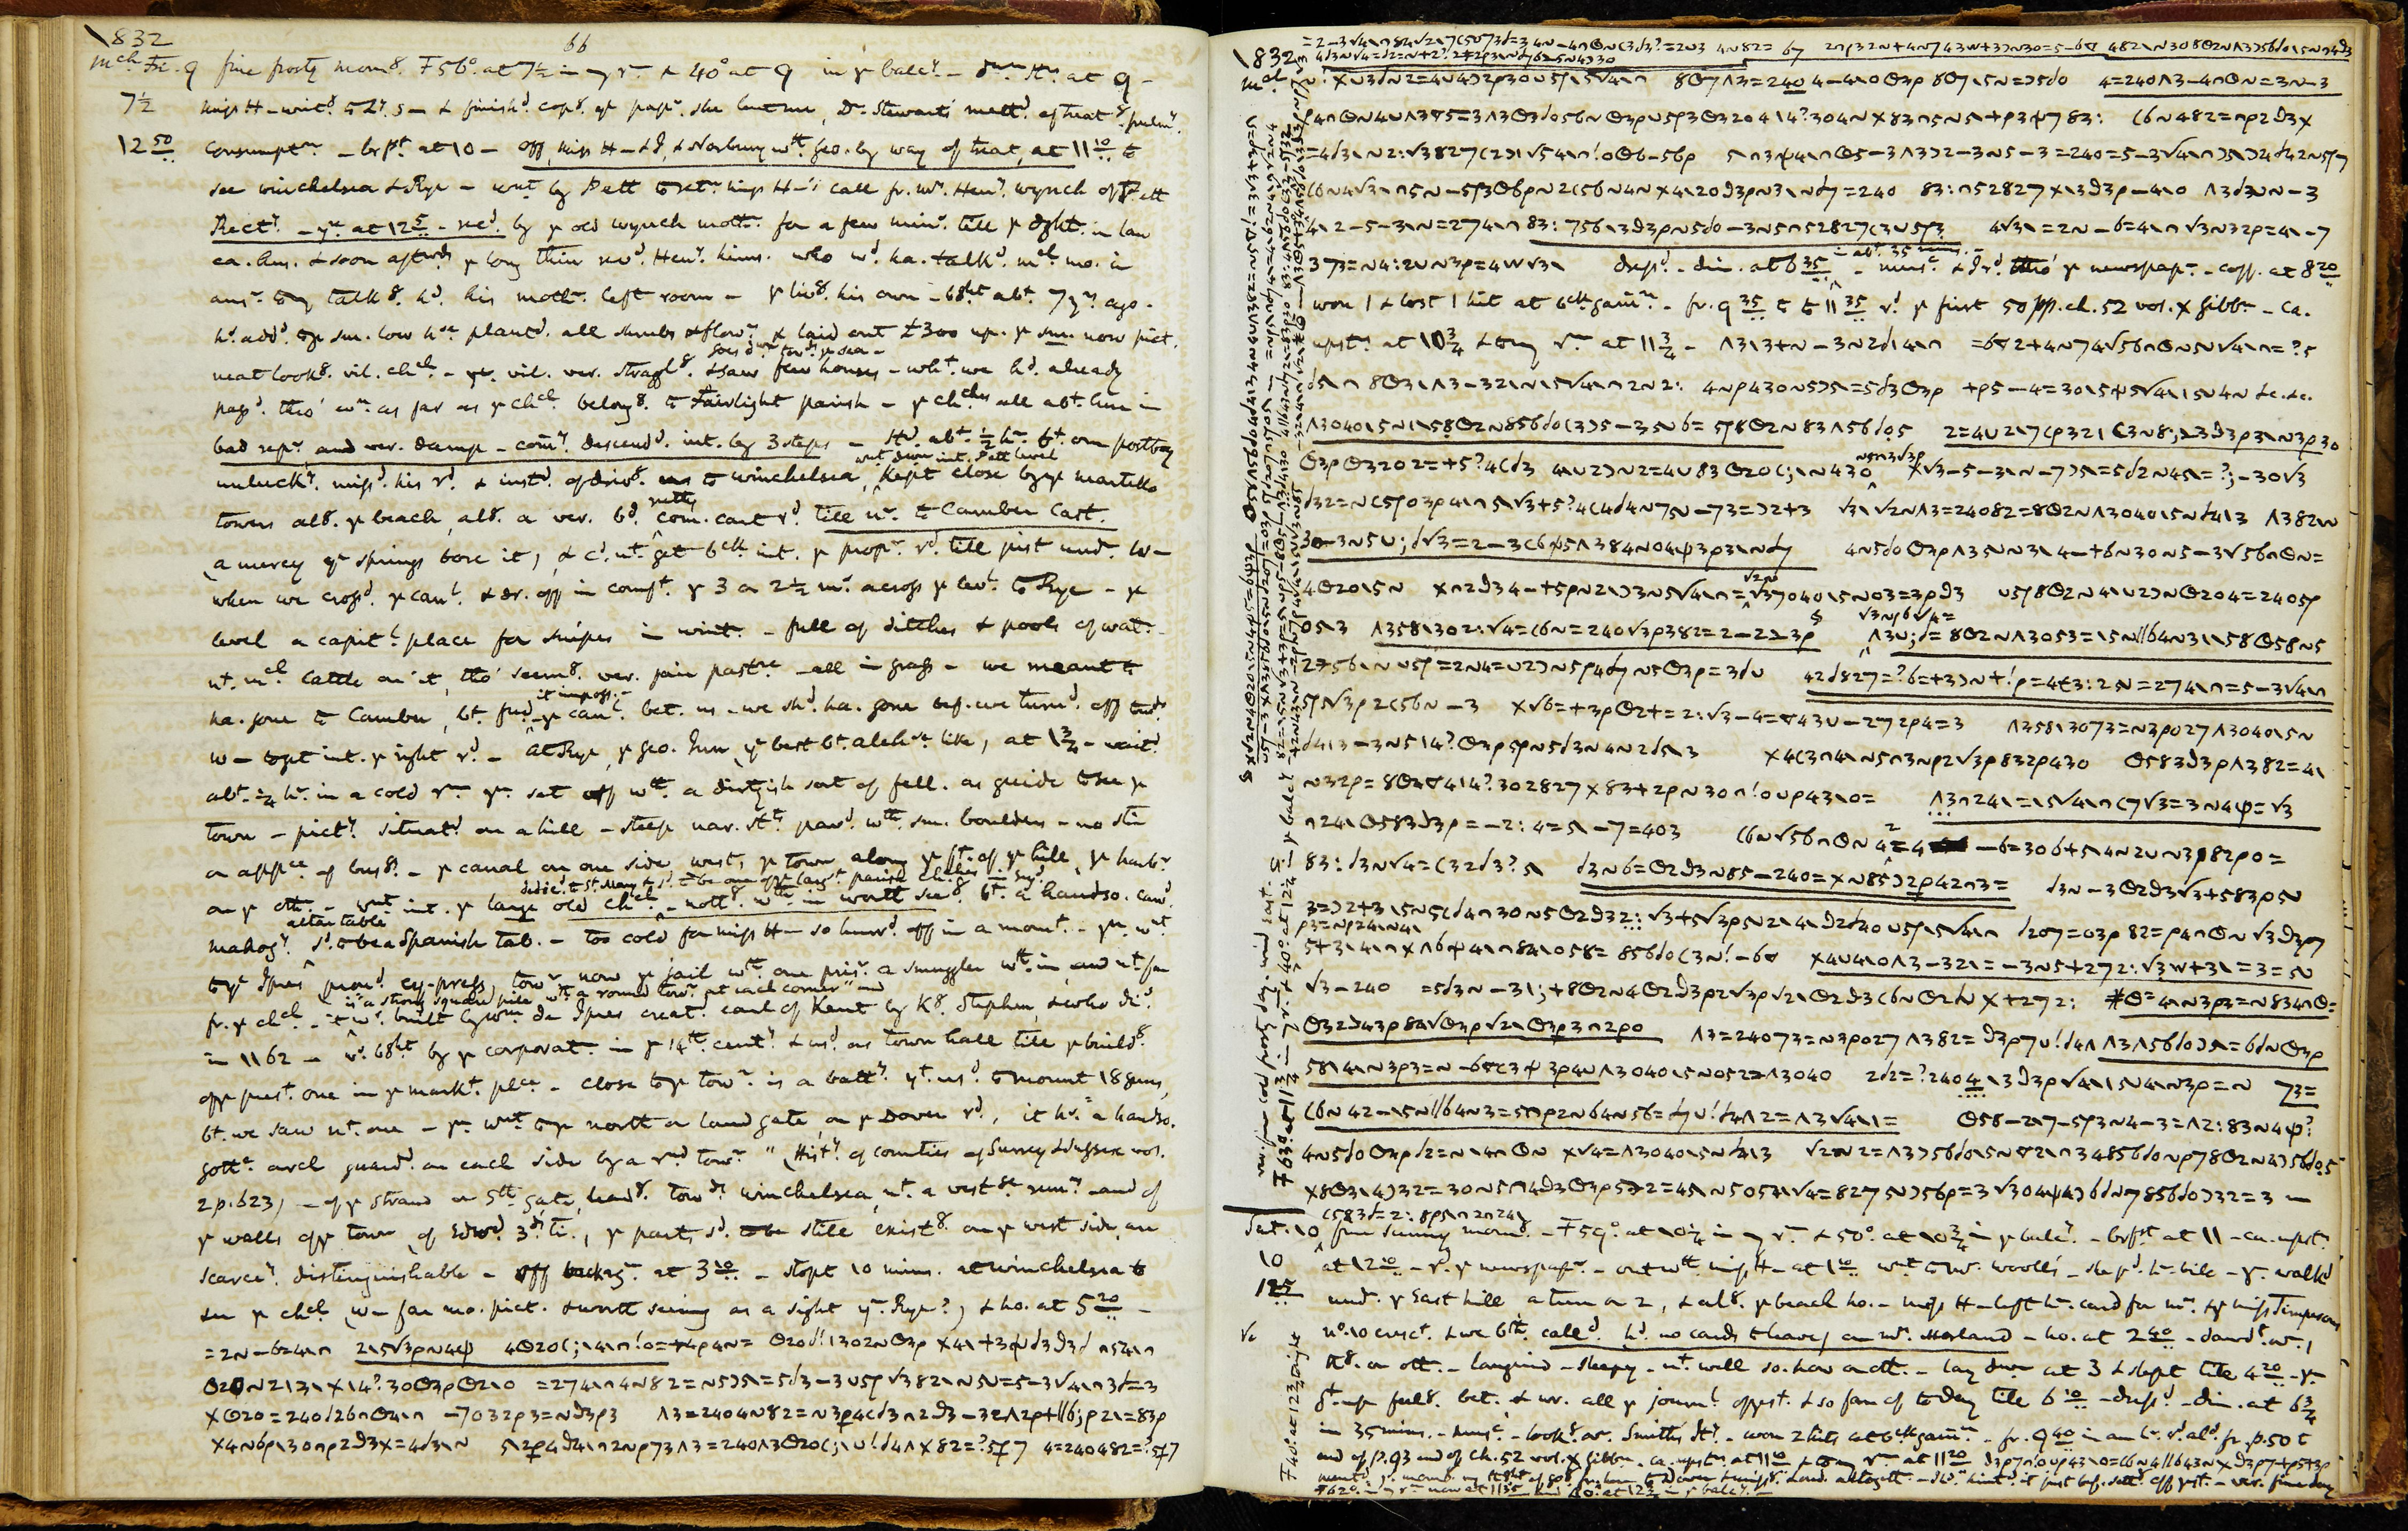 A page from Anne Lister's Diary